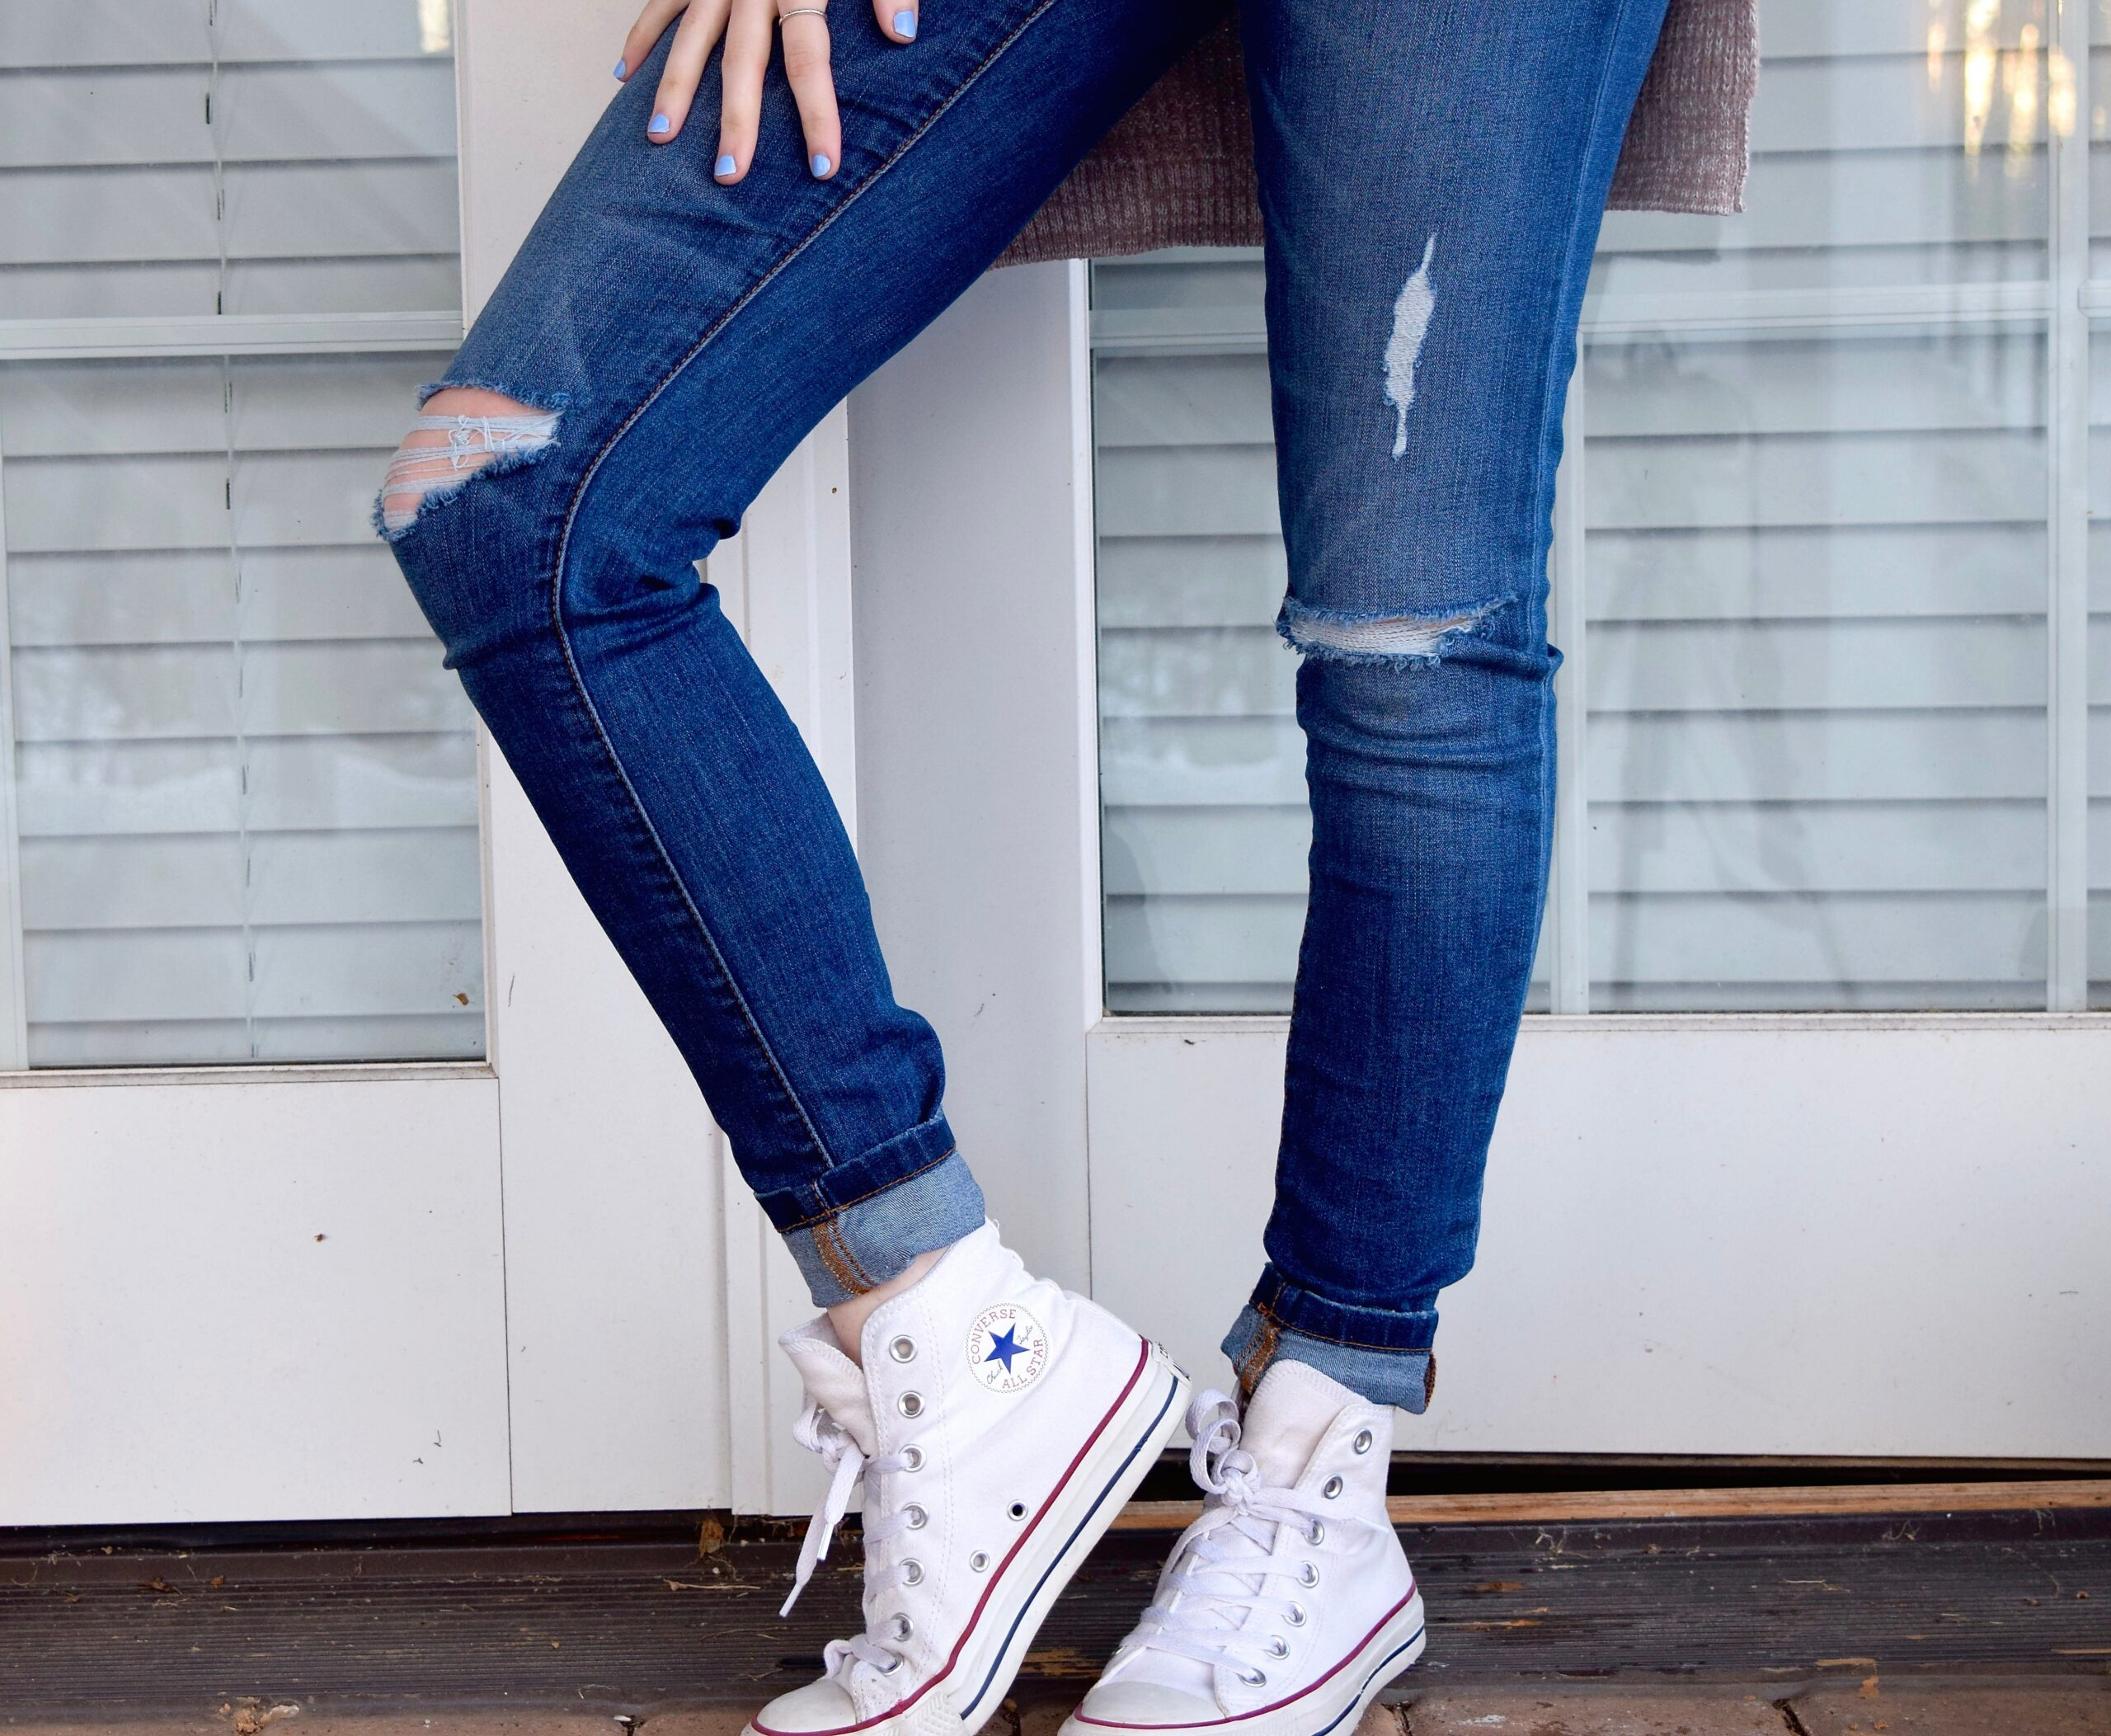 How to Look Good in Jeans